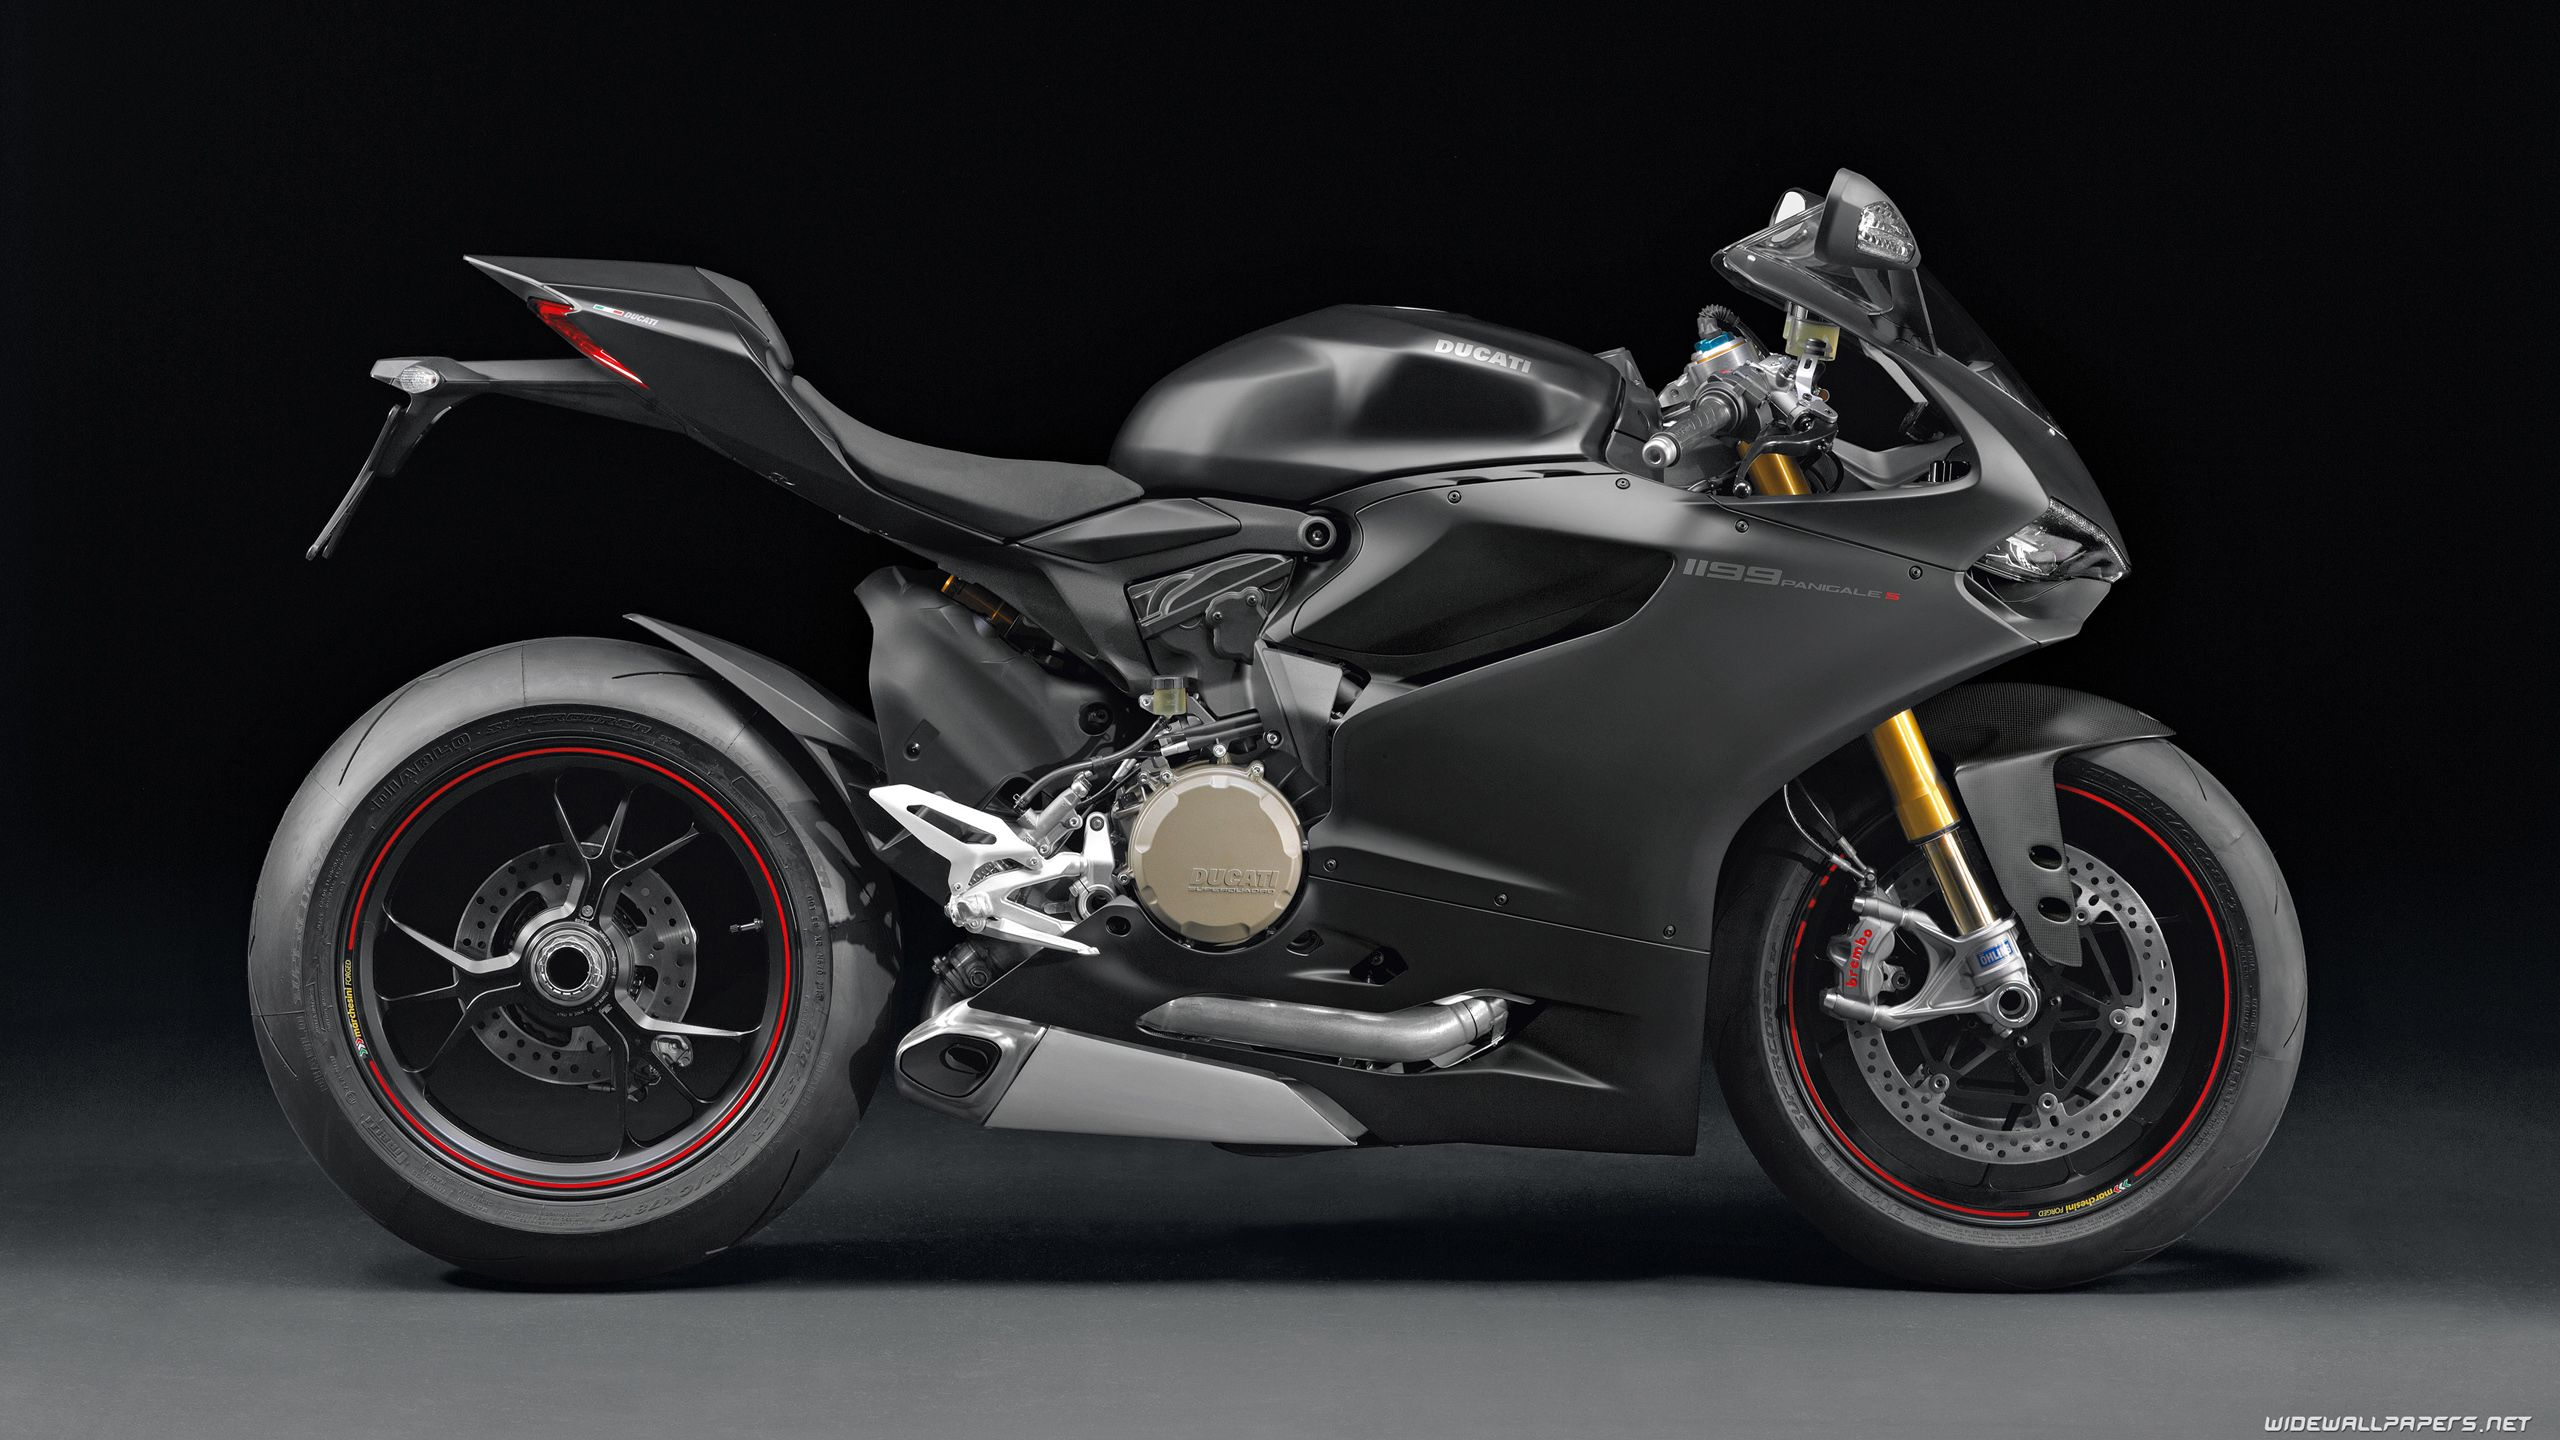 ducati 1199 panigale s hd wallpapers 10 | bikes wallpapers